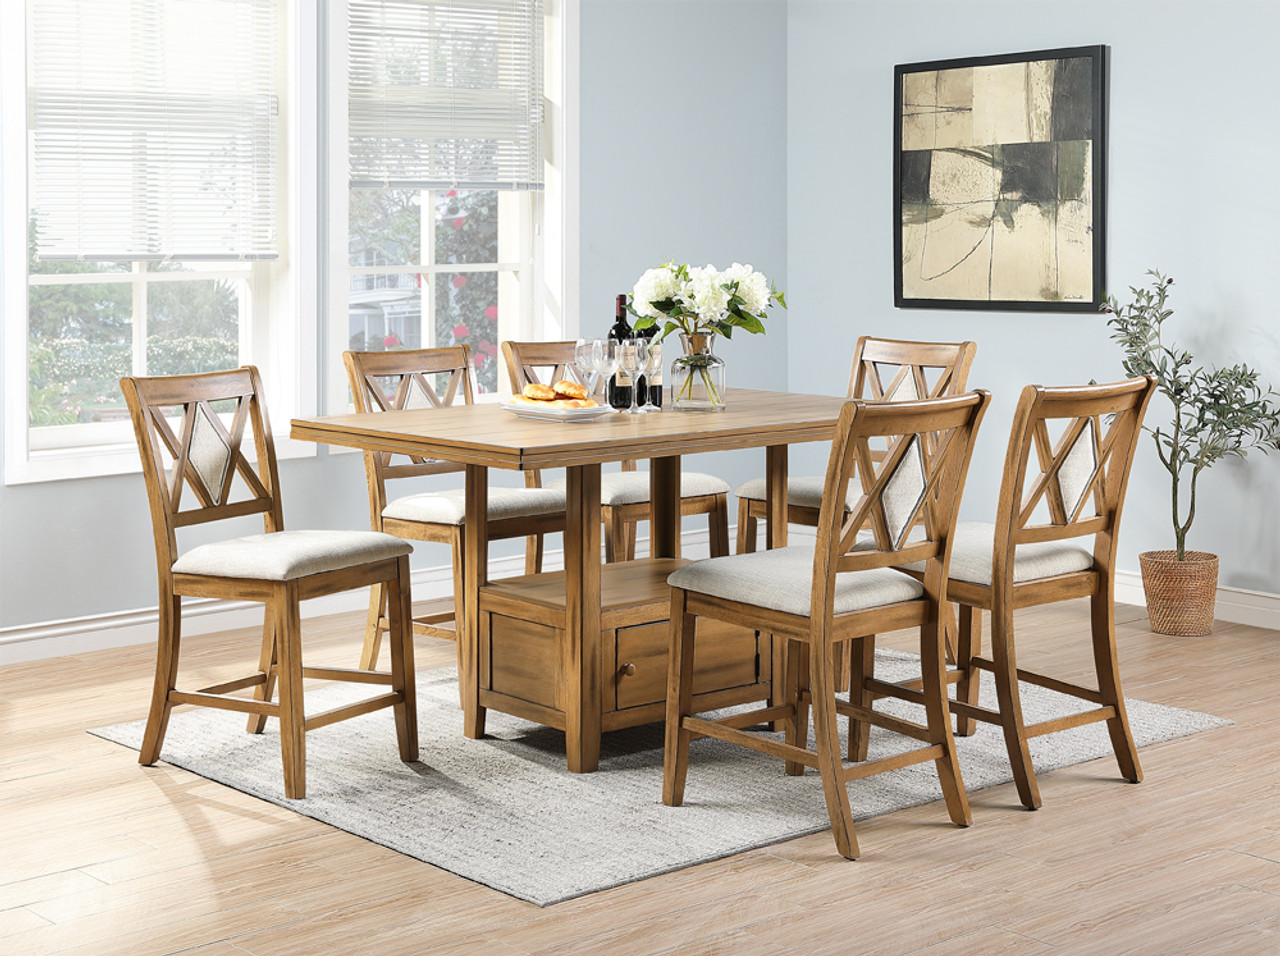 The Blacksburg Counter Height Dining Table in Oak available at ...